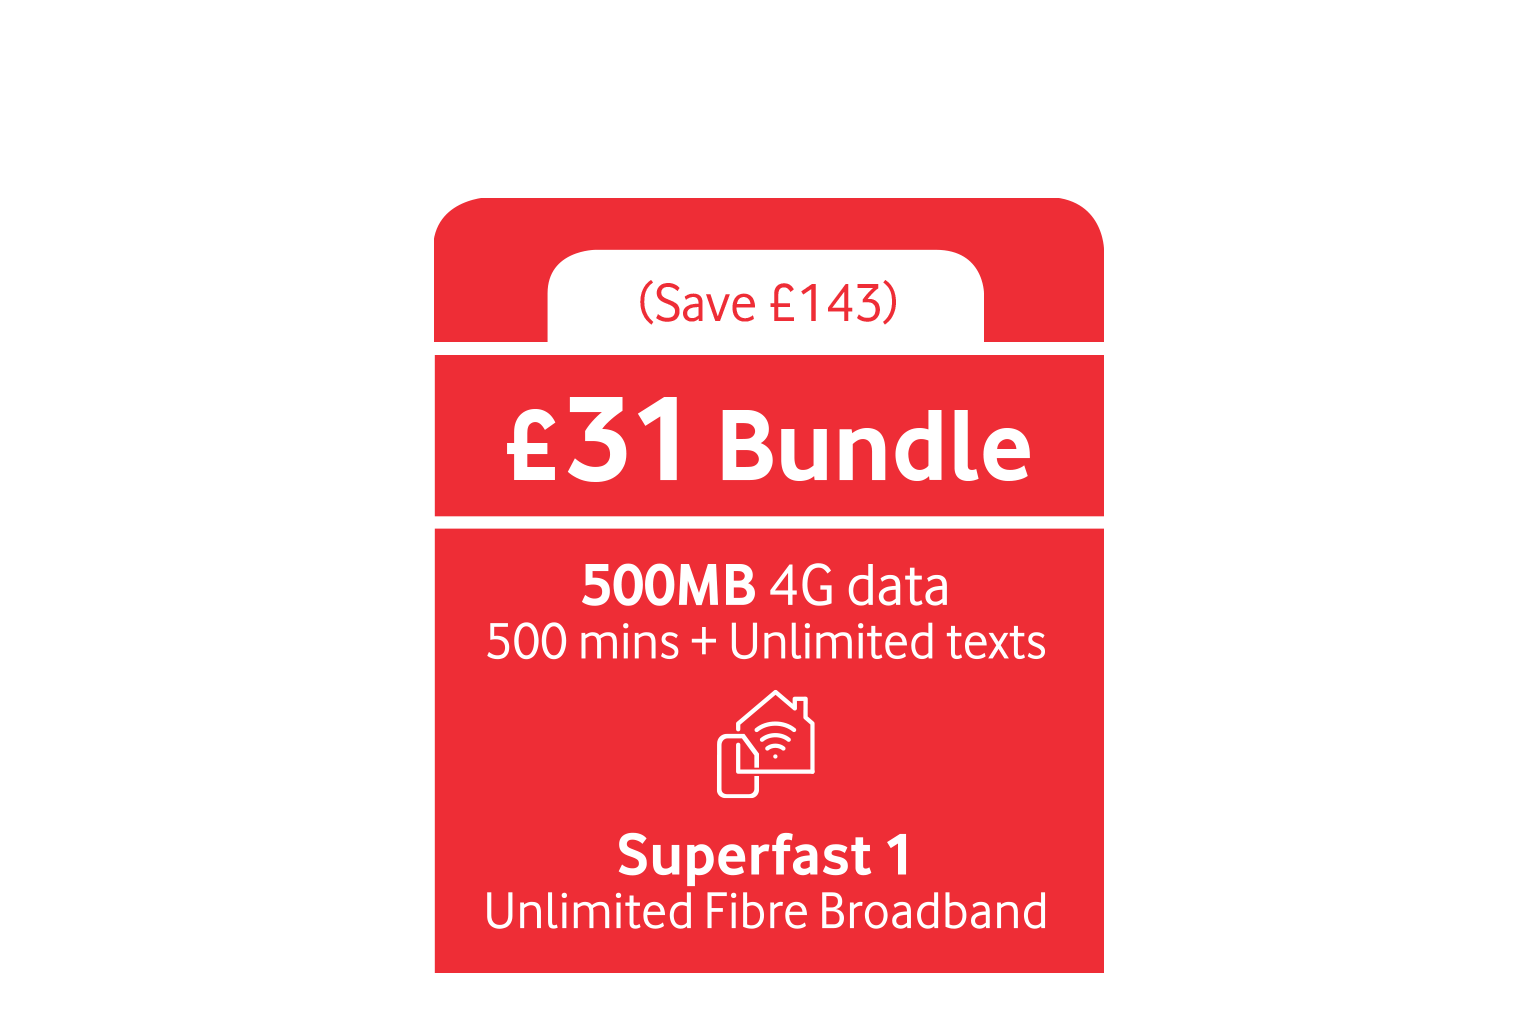 uk broadband only deals